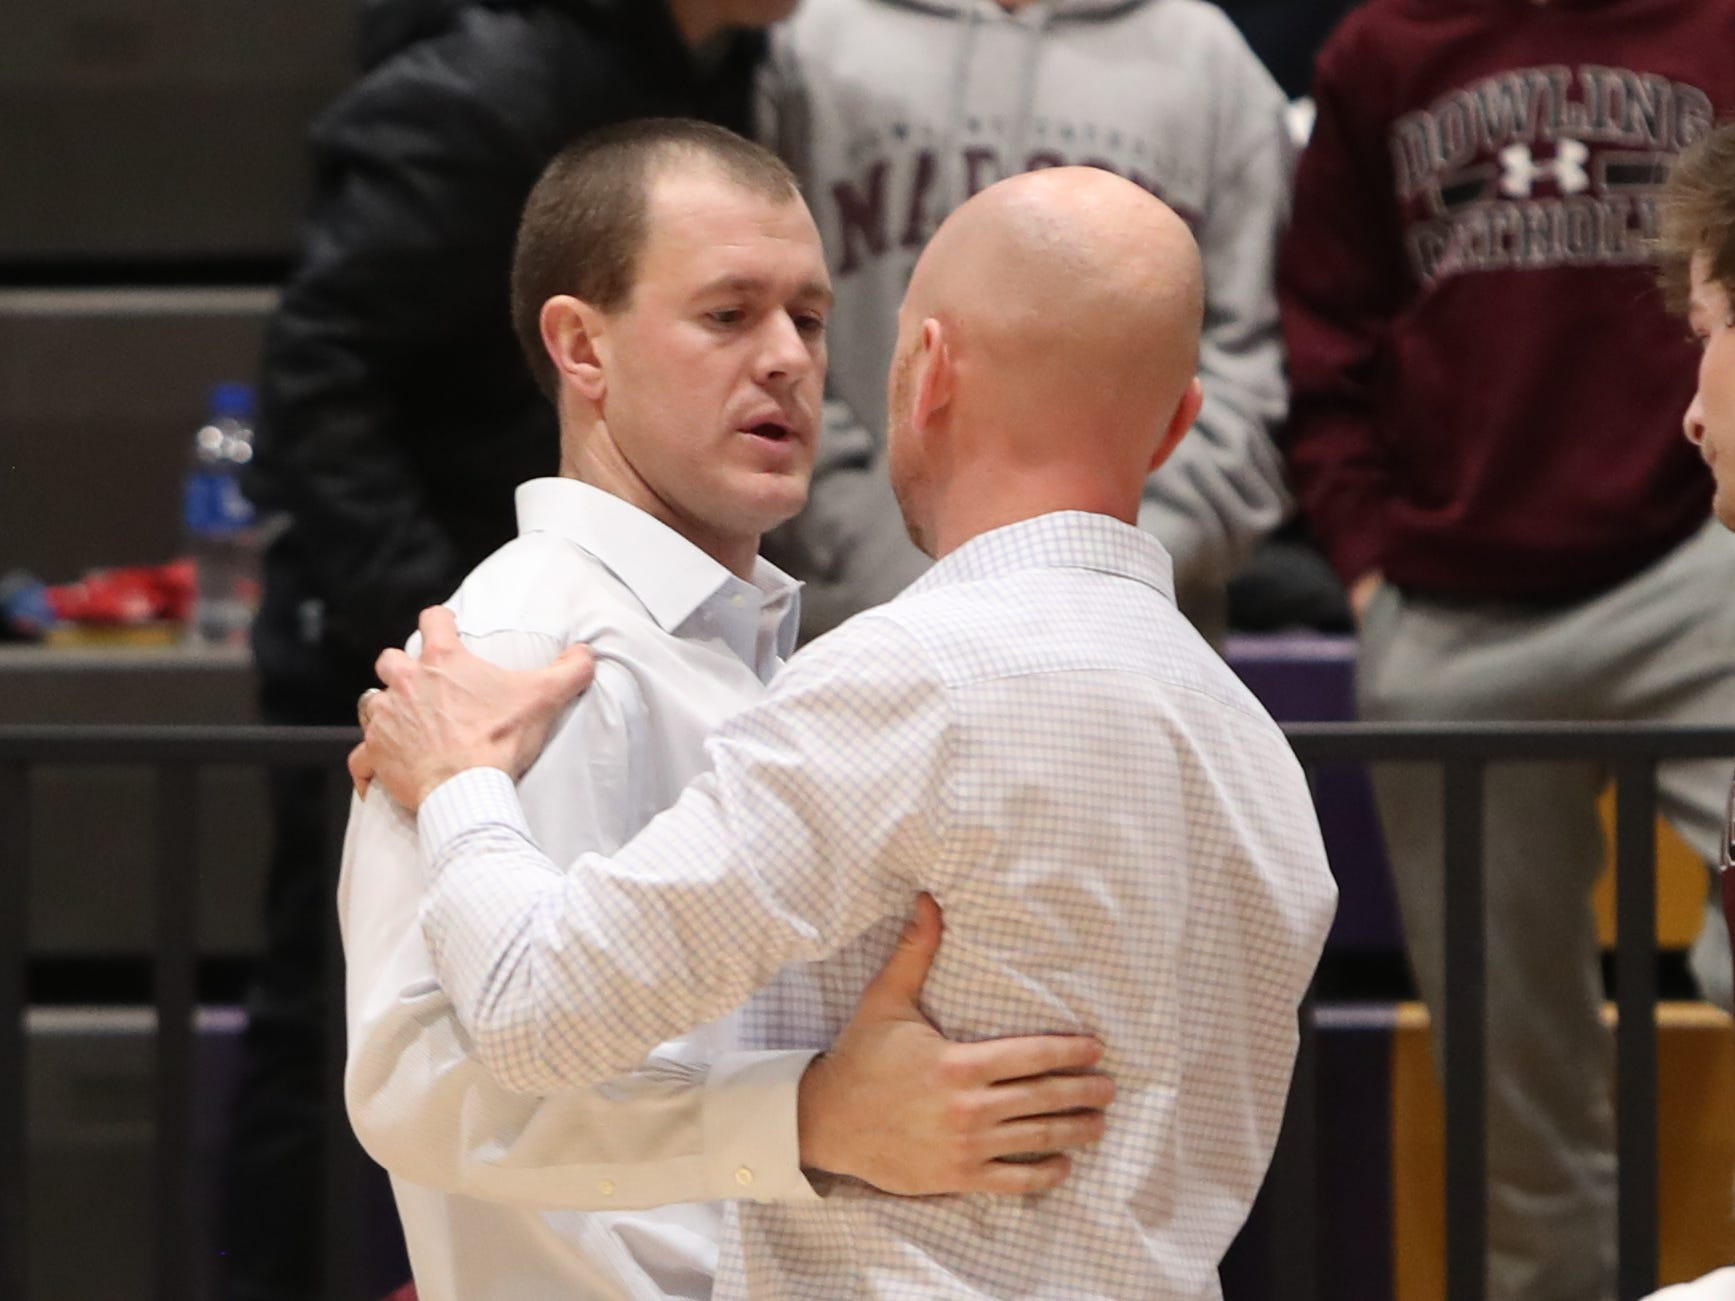 Southeast Polk head coach Alan Jenkins talks to Dowling Catholic head coach Mike O'Connor after the game at Johnston High School in Johnston, Iowa, on Tuesday, Feb. 26, 2019. Dowling won the game 44-40 to advance to state.